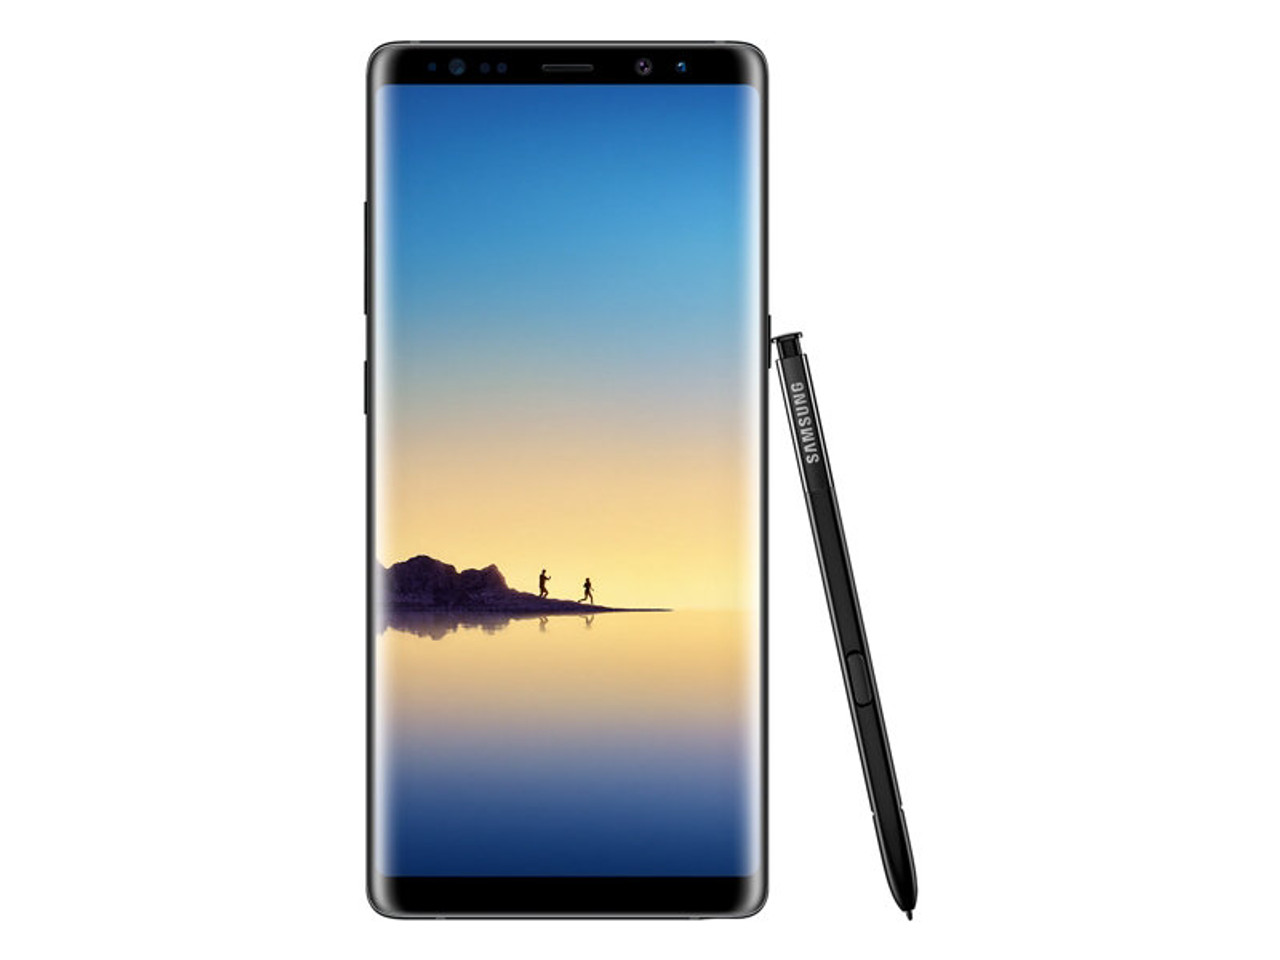 Remote Galaxy Note 8 N950U Google Account Removal Bypass/Unlock, Reset FRP